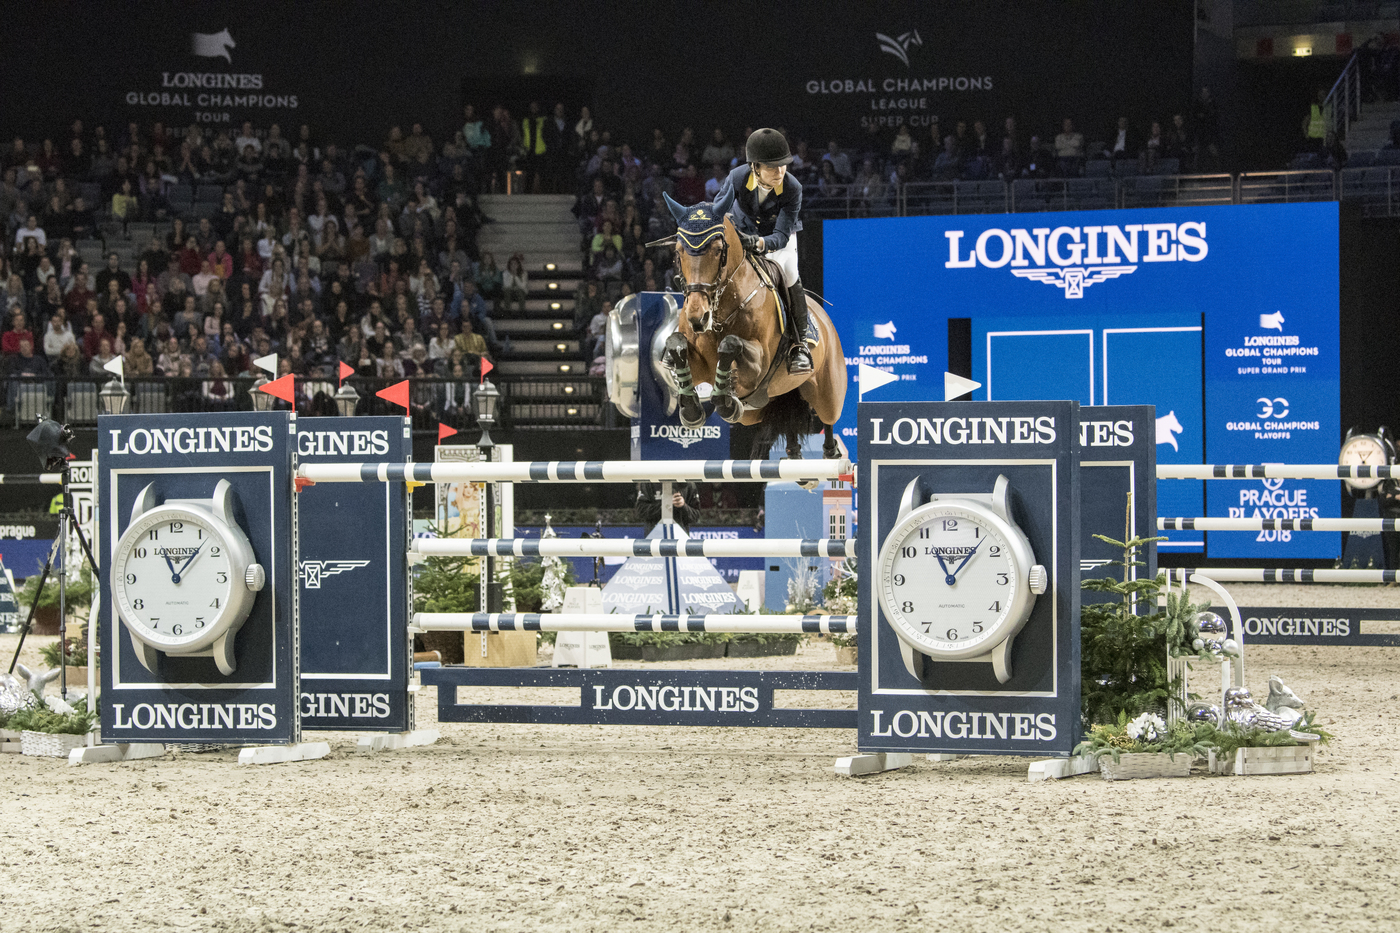 Longines Show Jumping Event: Fantastic victory of Edwina Tops-Alexander who becomes the Champion of the Longines Global Champions Tour Super Grand Prix 4